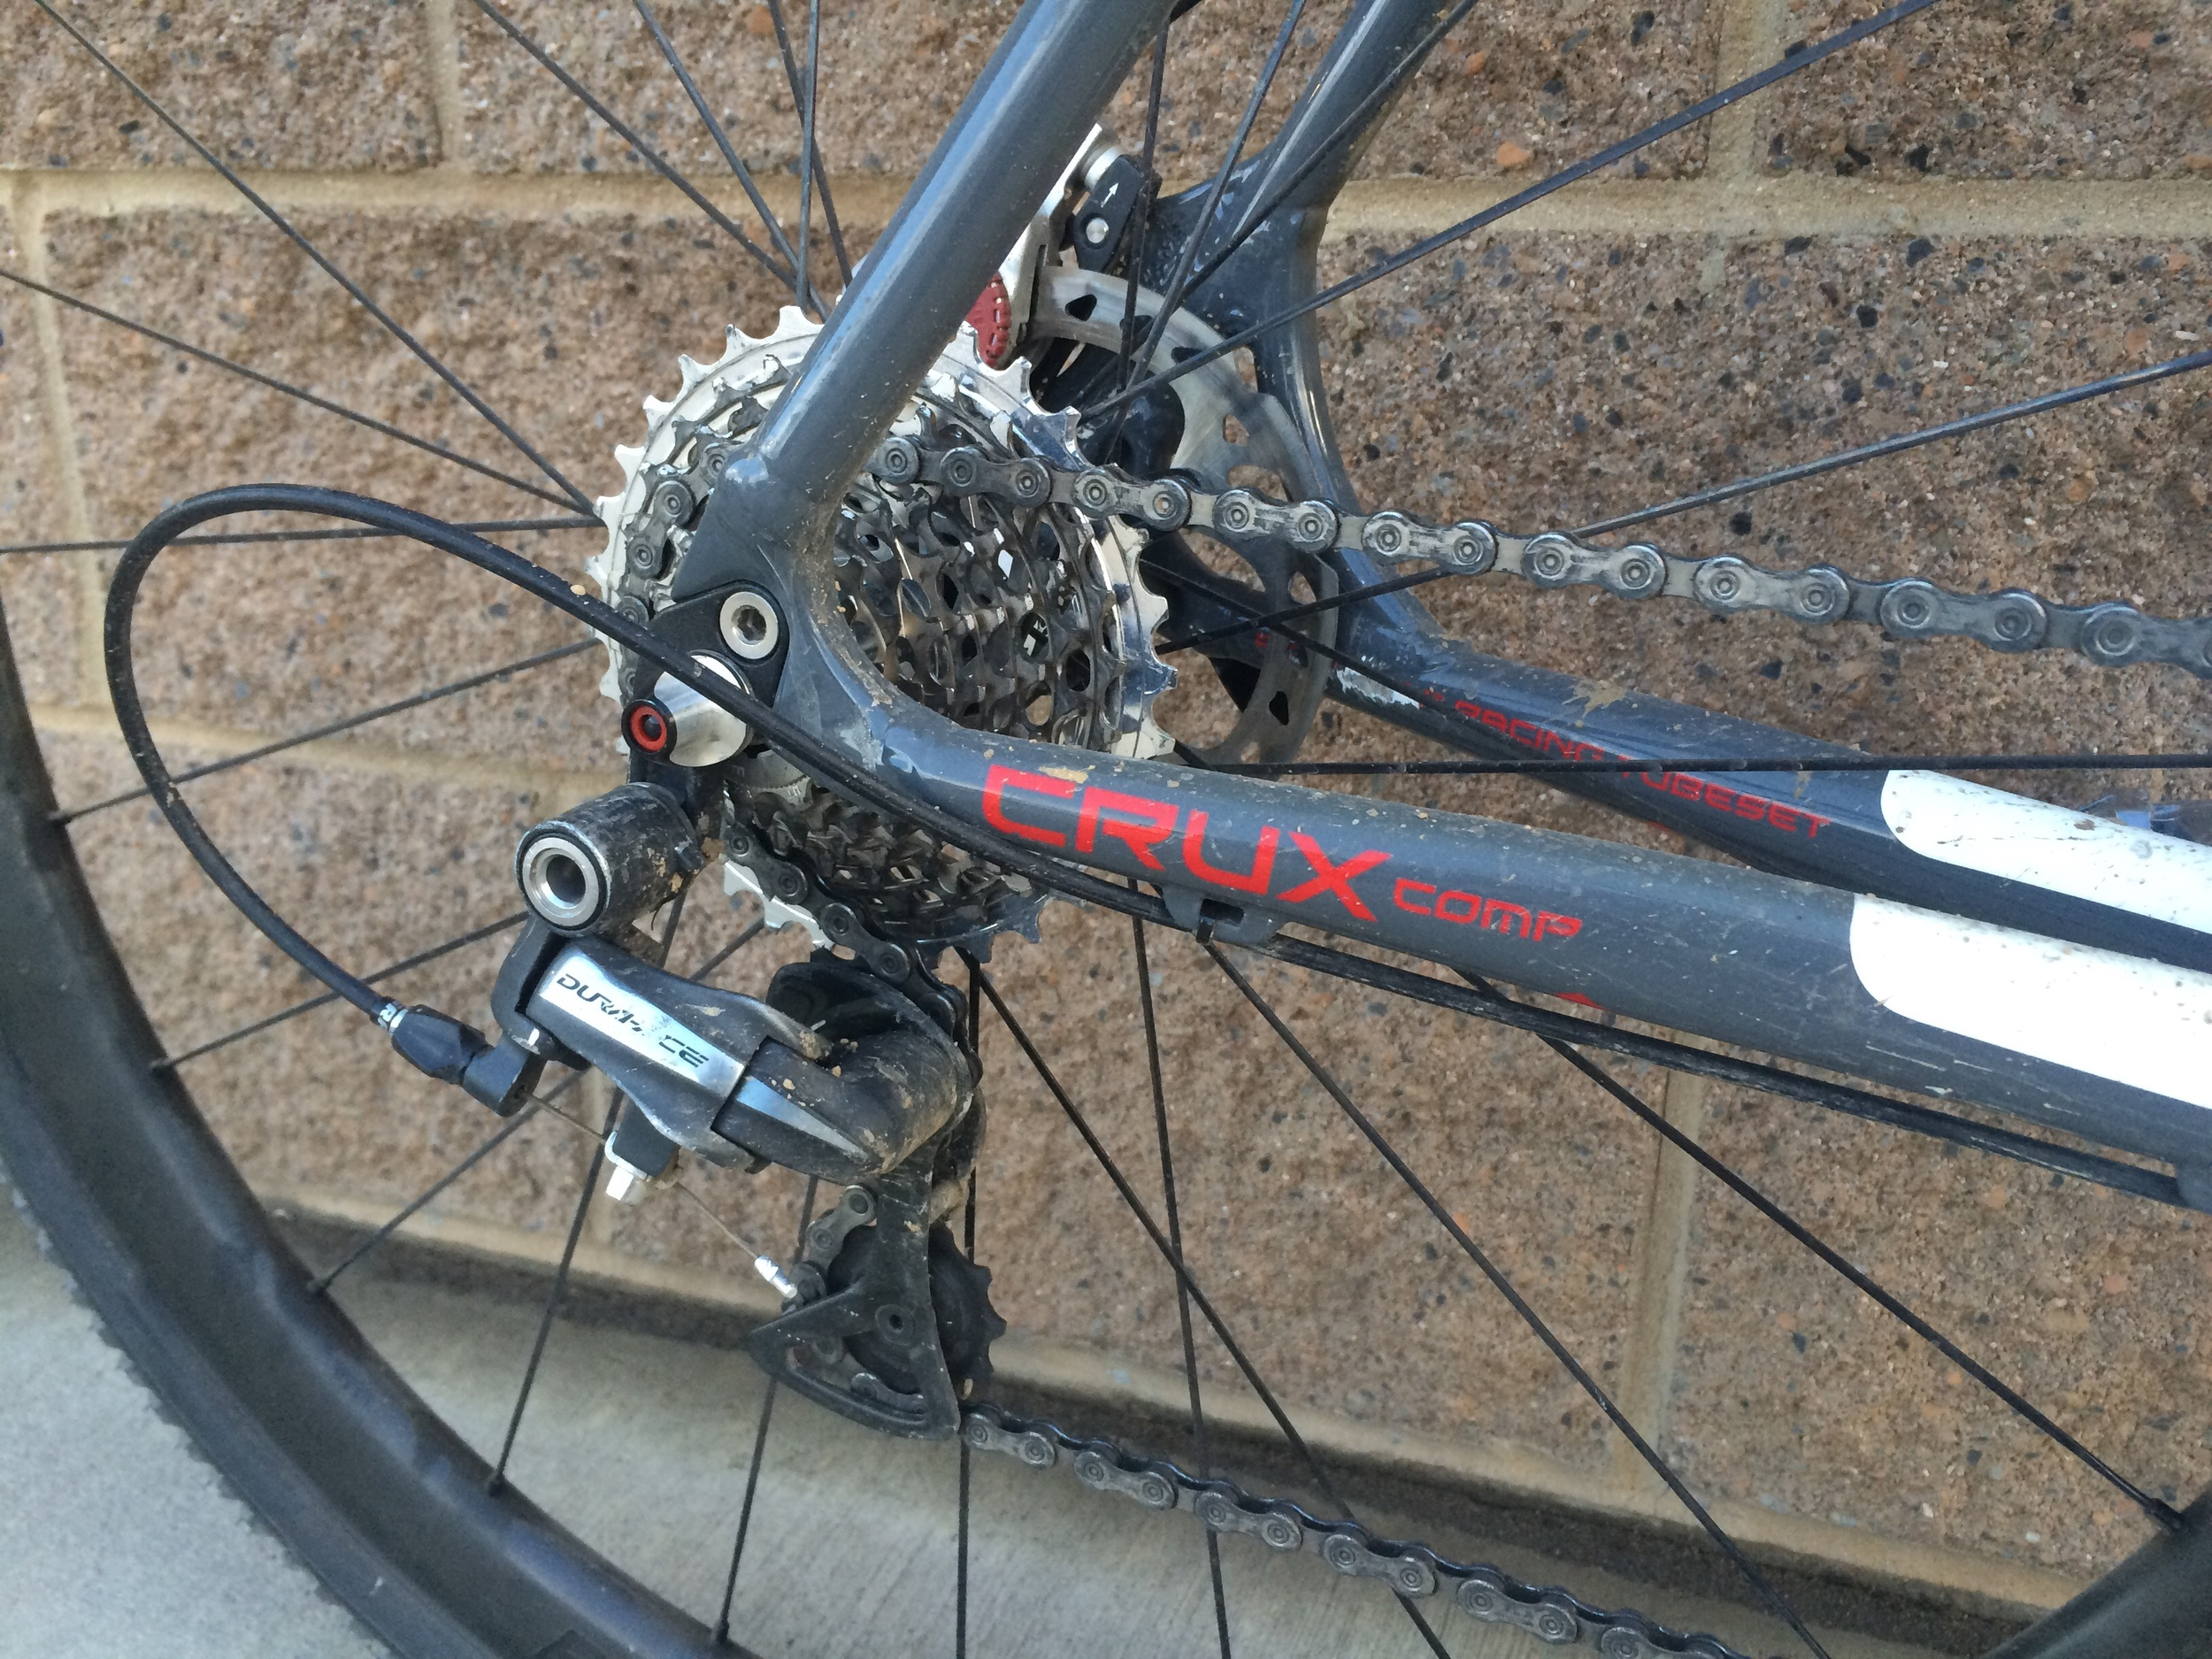 10 spd Shimano derailleurs and shifters with a fancy SRAM Red 11x32 cassette. It's not supposed to work but it does.